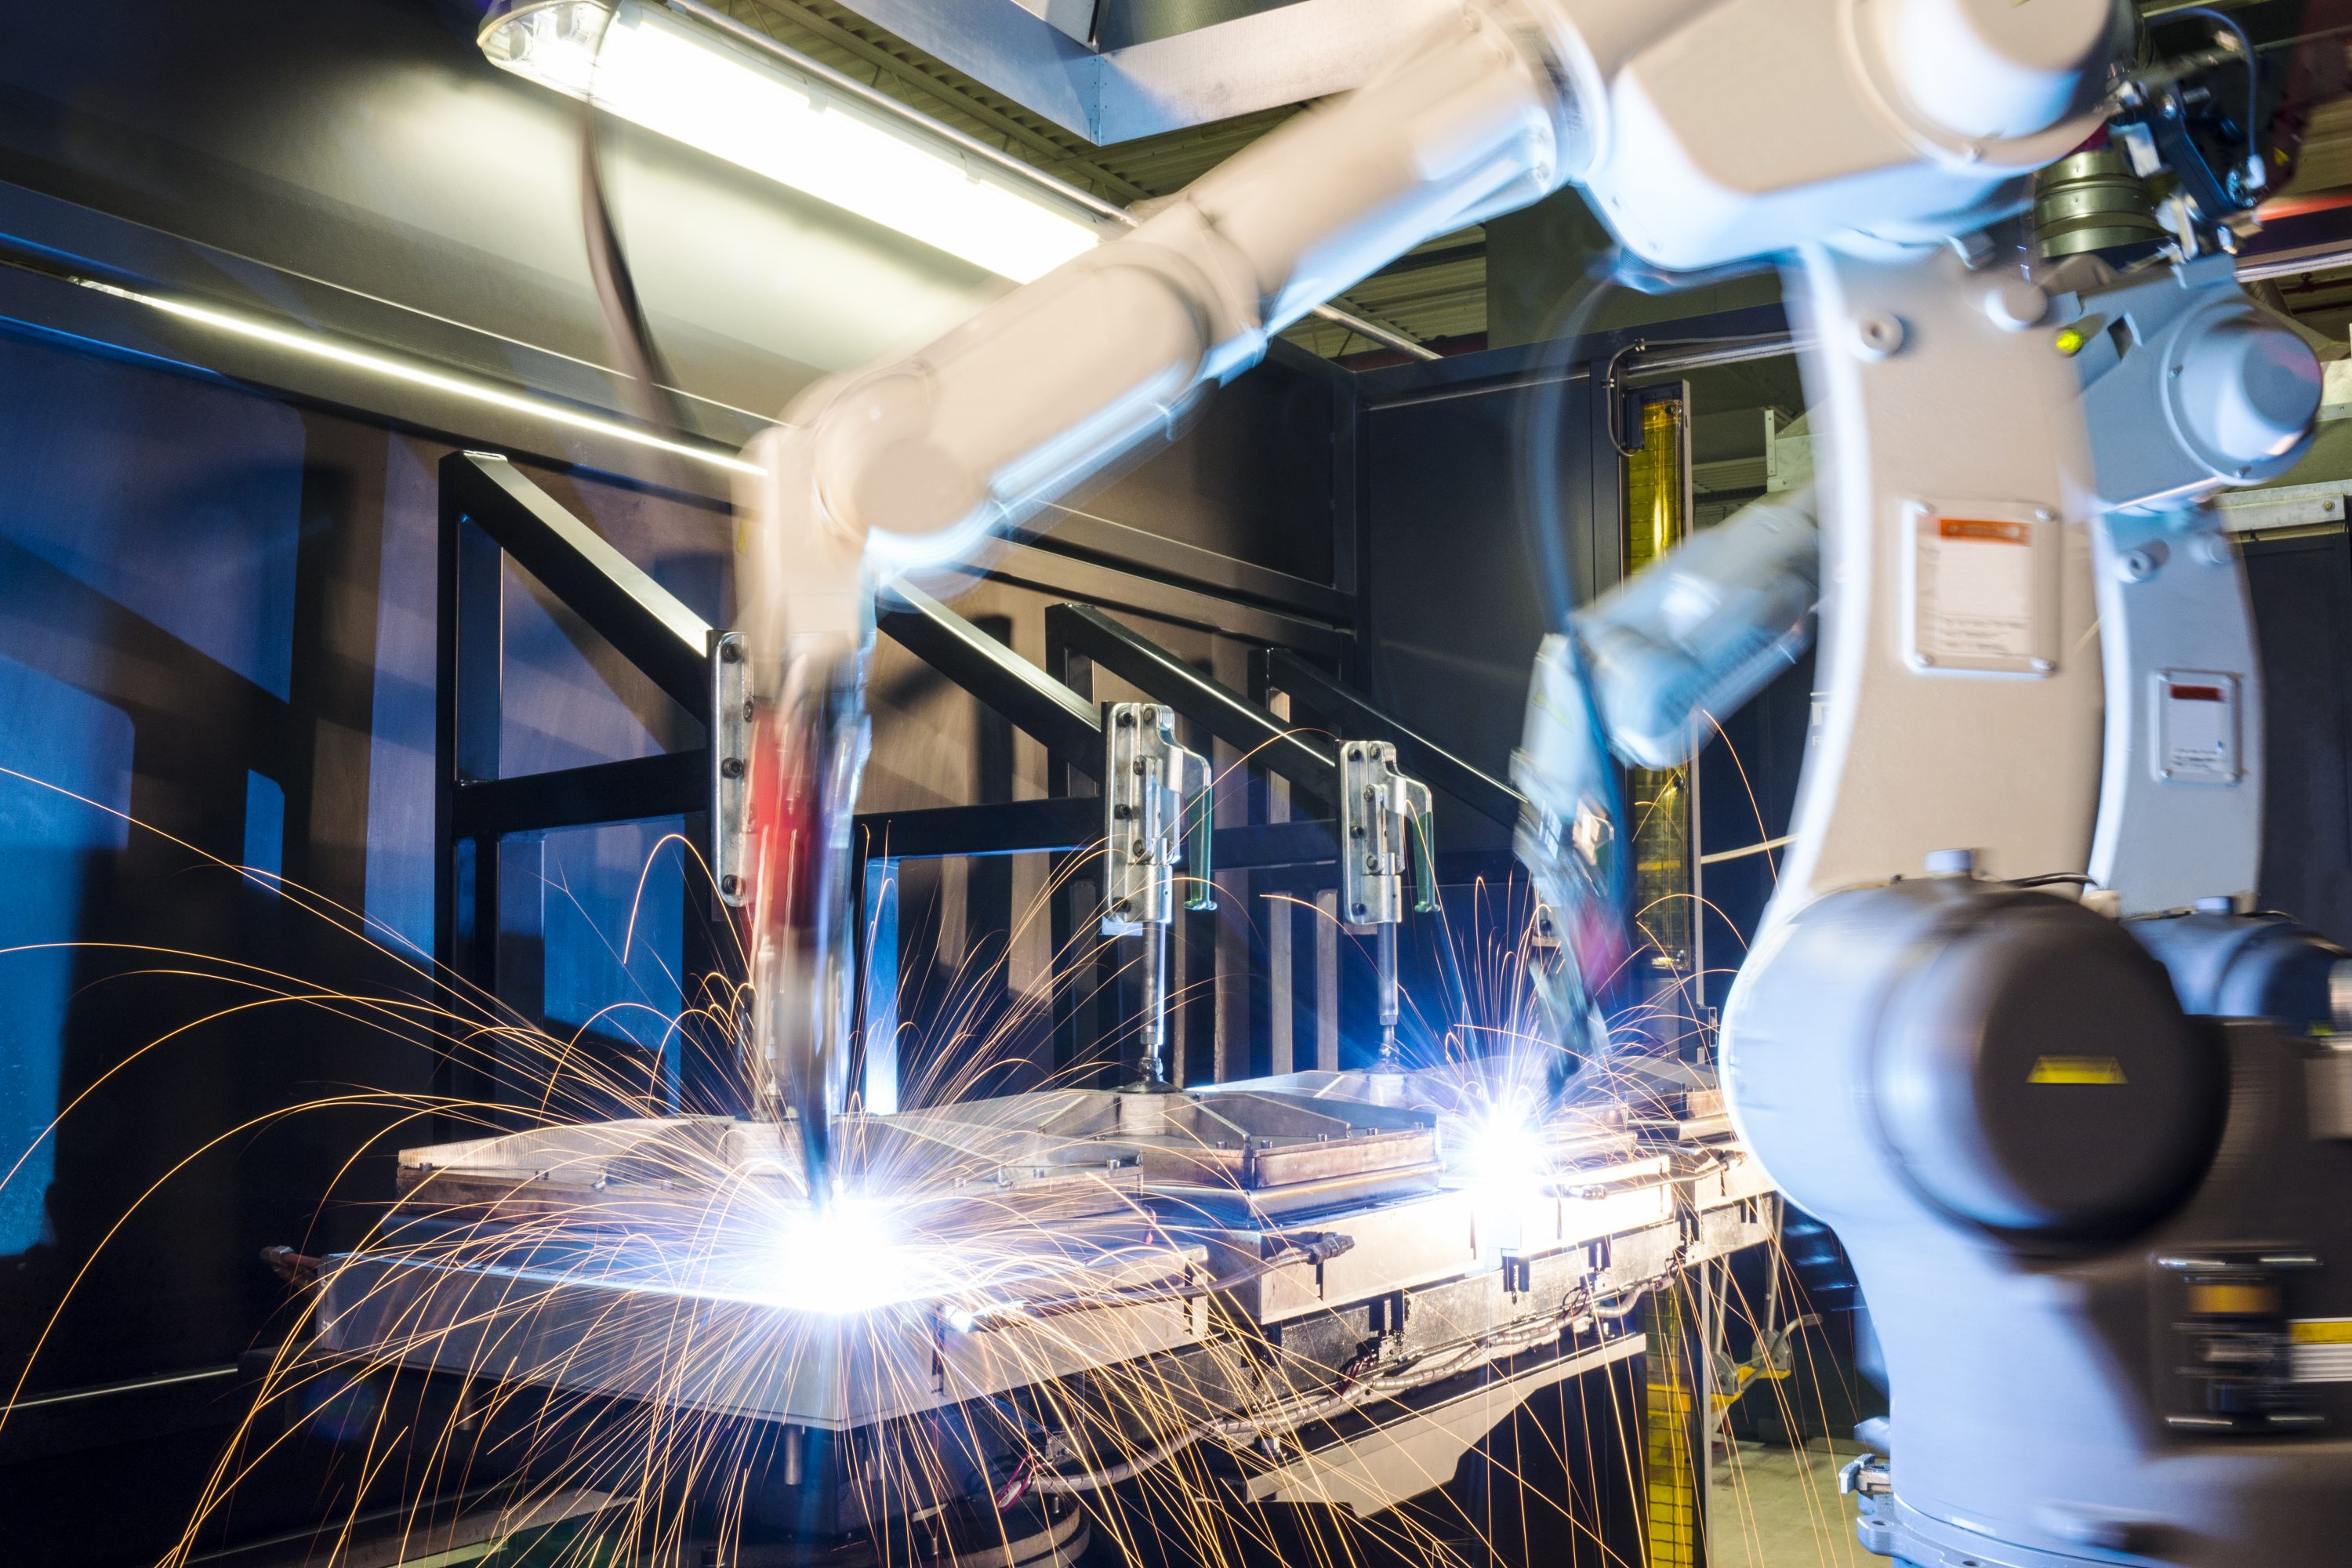 High-tech, industrial robotic welding machines in operation. (Getty Images)